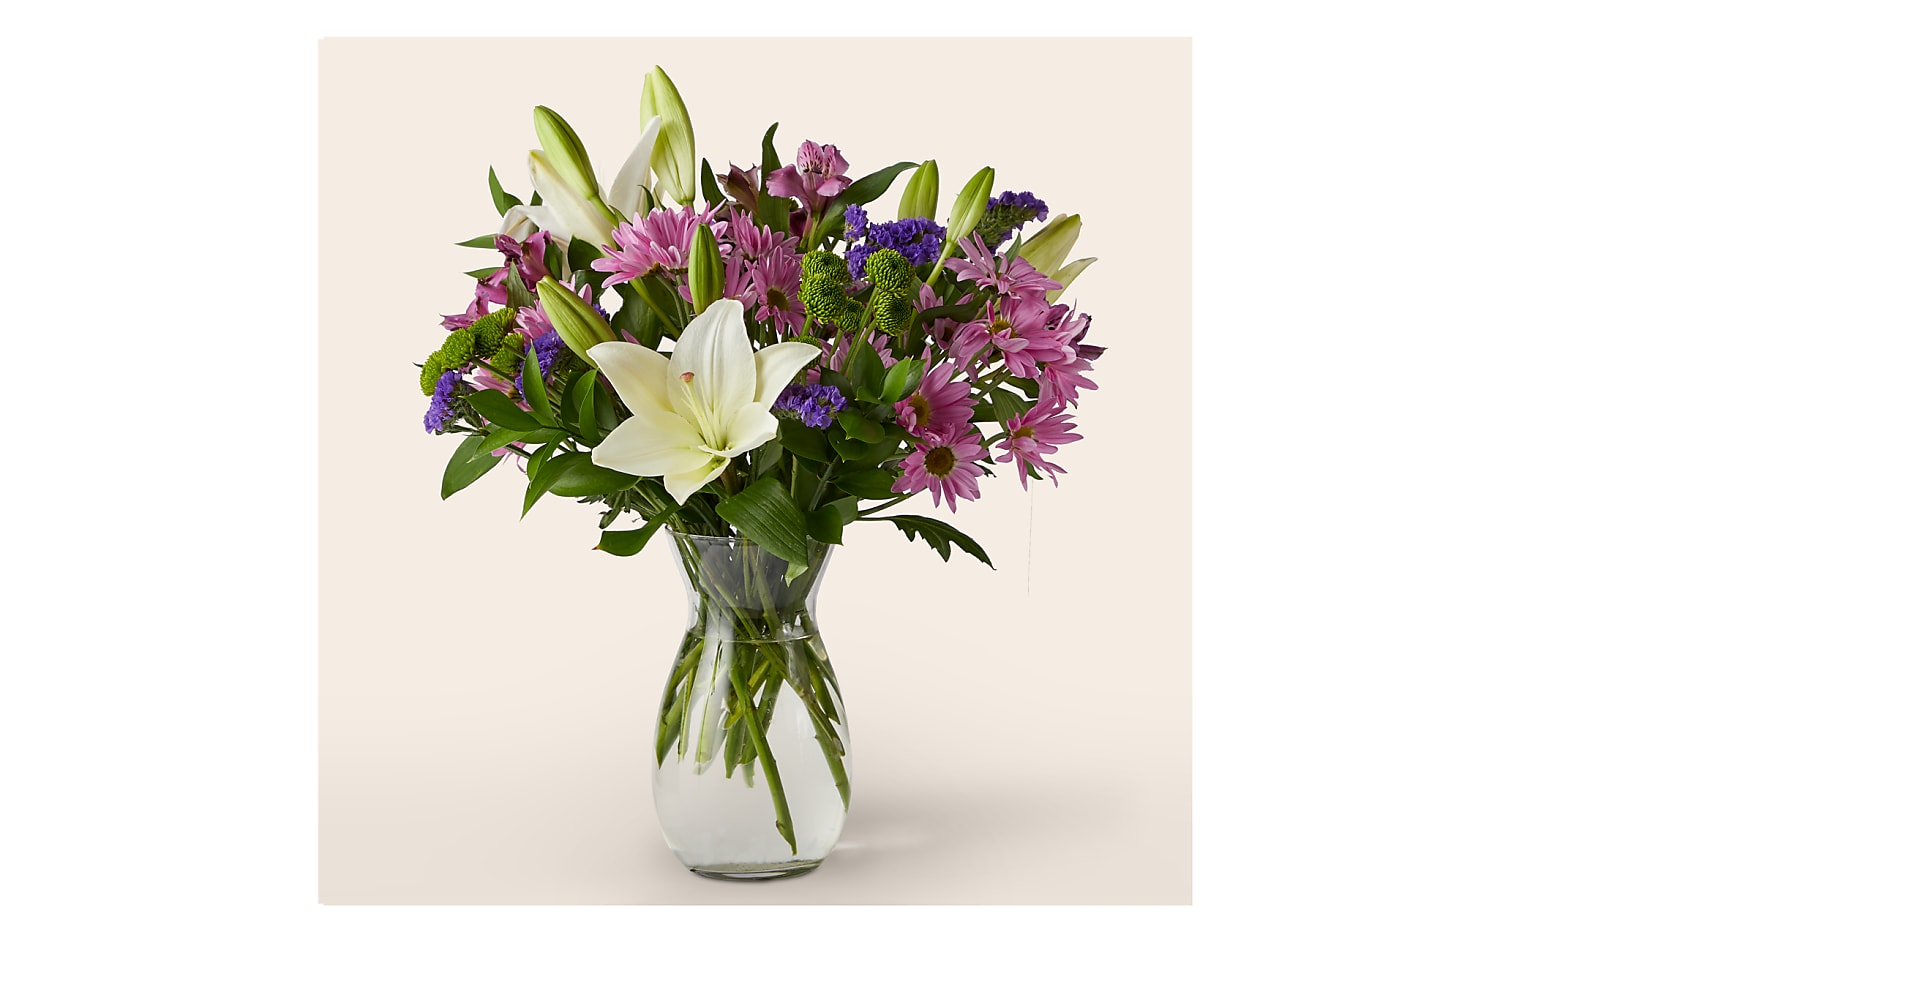 Lavender Fields Mixed Flower Bouquet with Vase - Image 1 Of 3